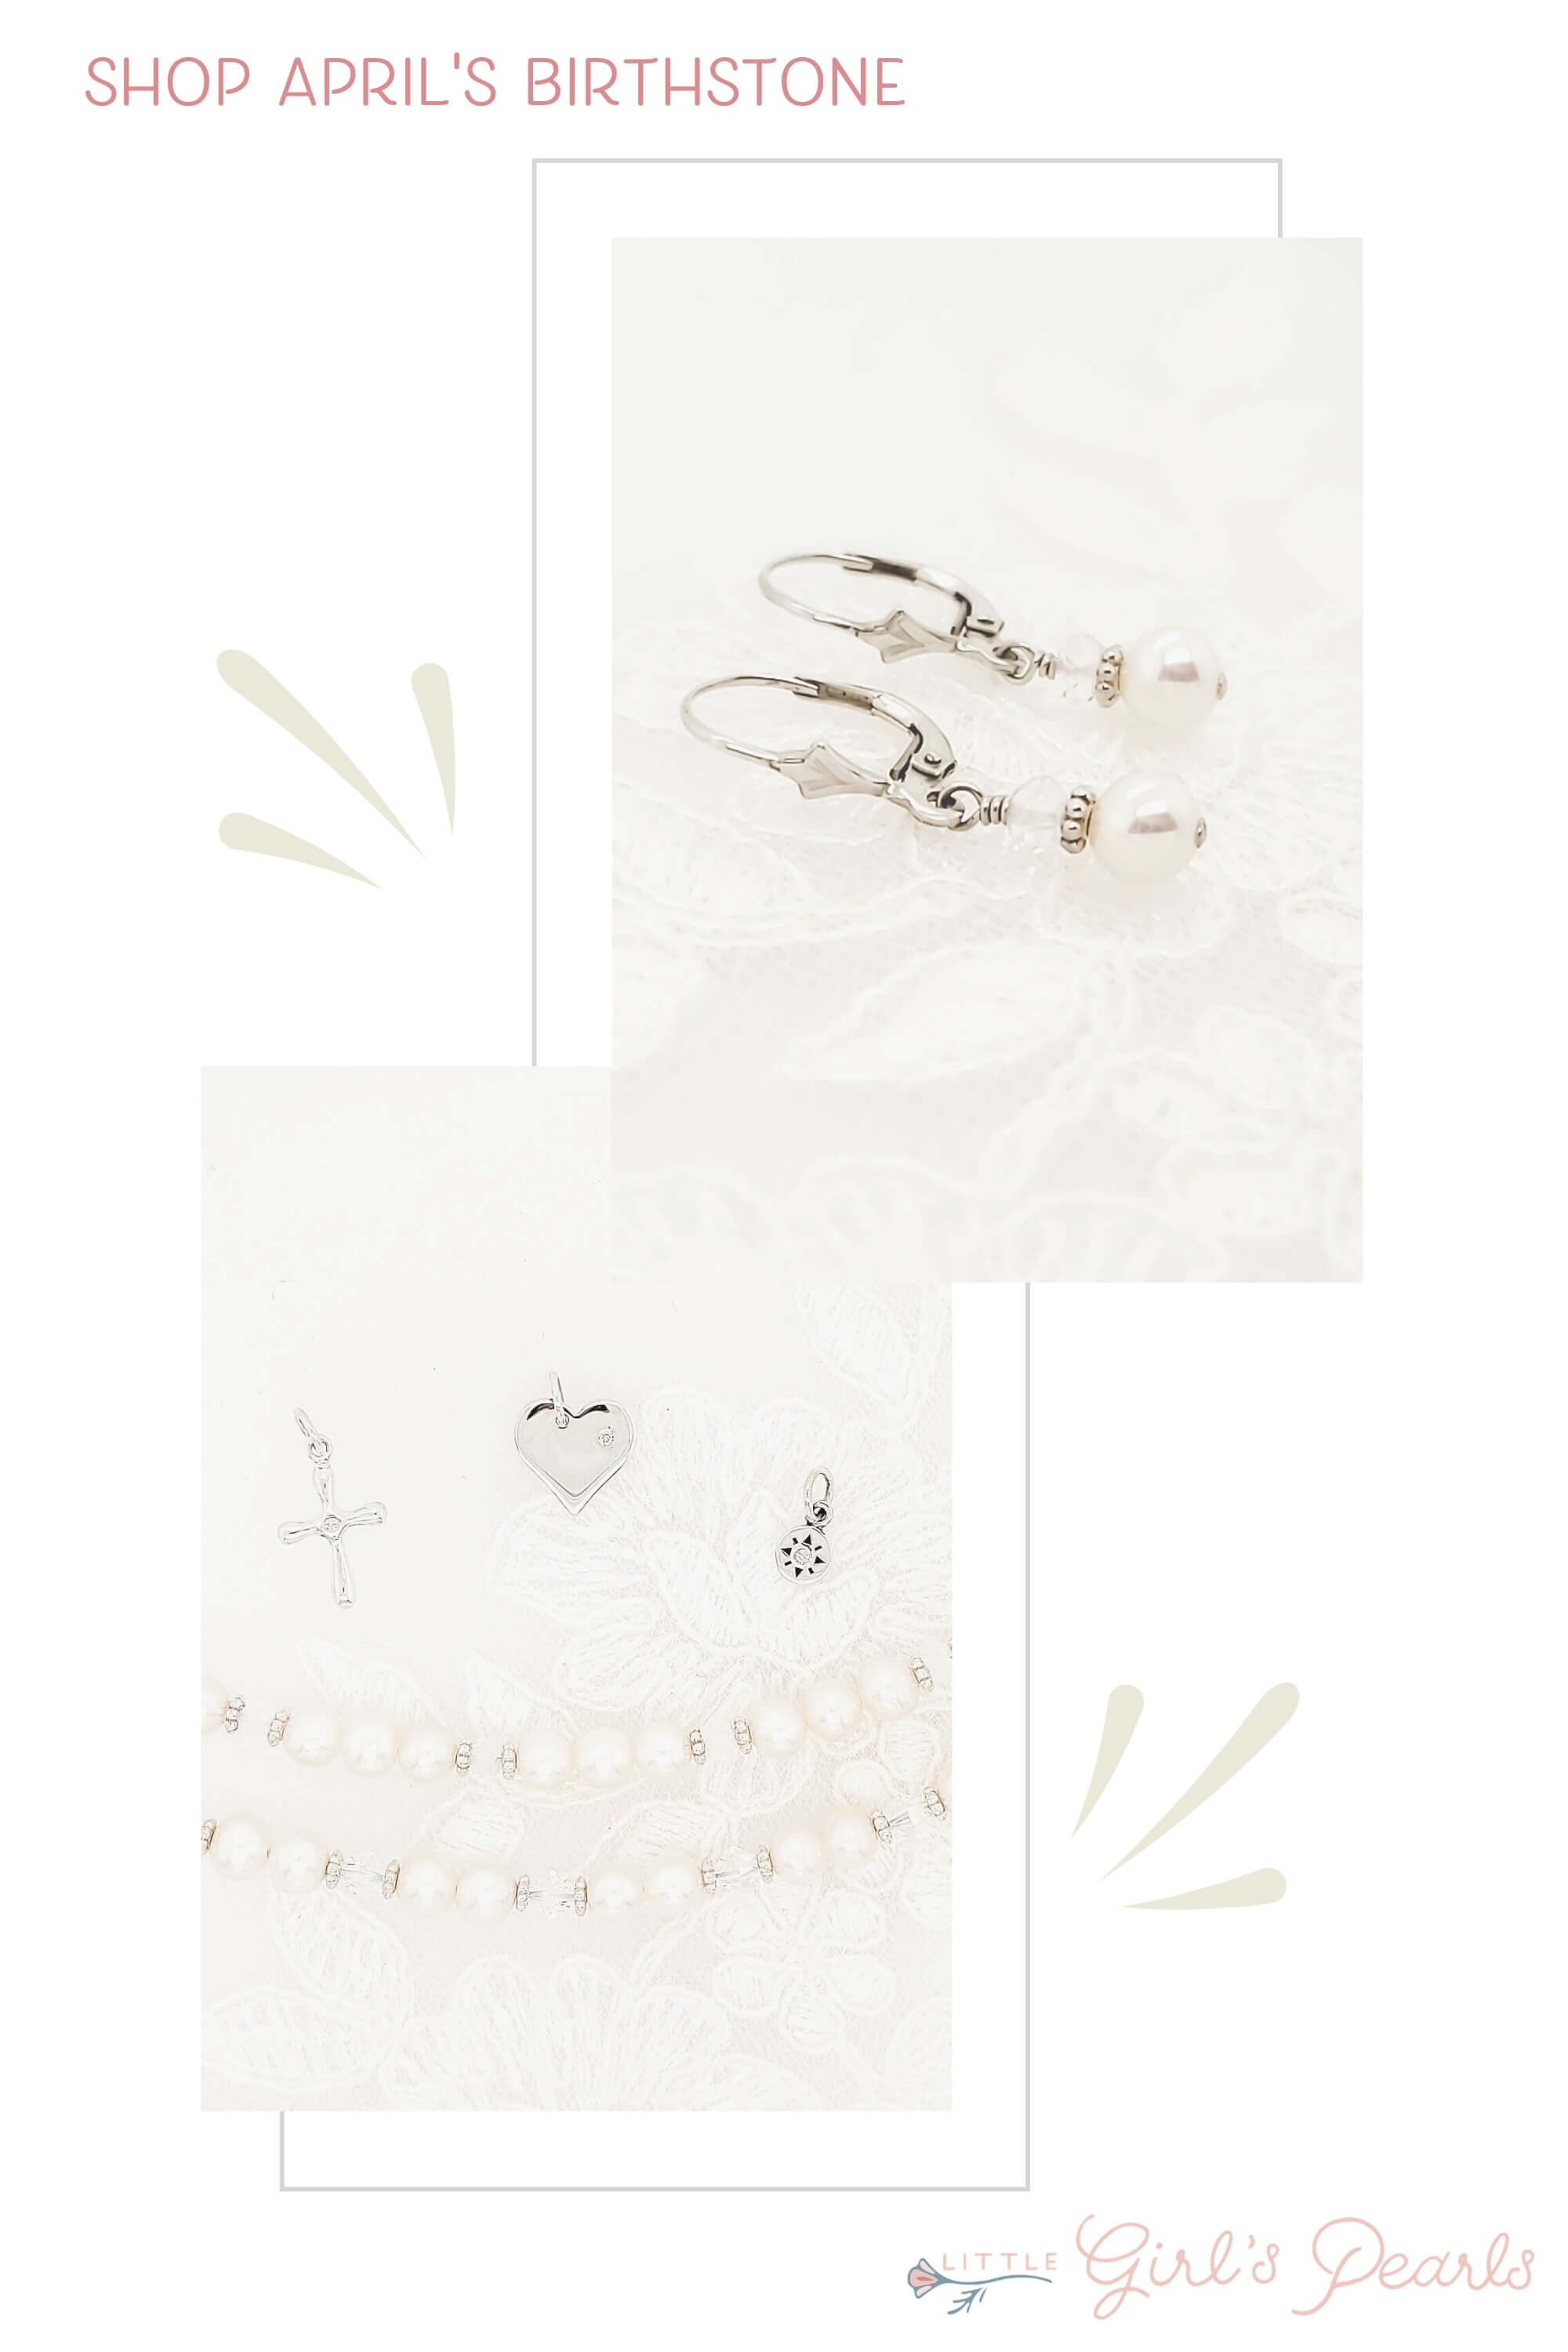 shop April's birthstone from little girl's pearls - diamond and pearl earrings, crystal necklaces.